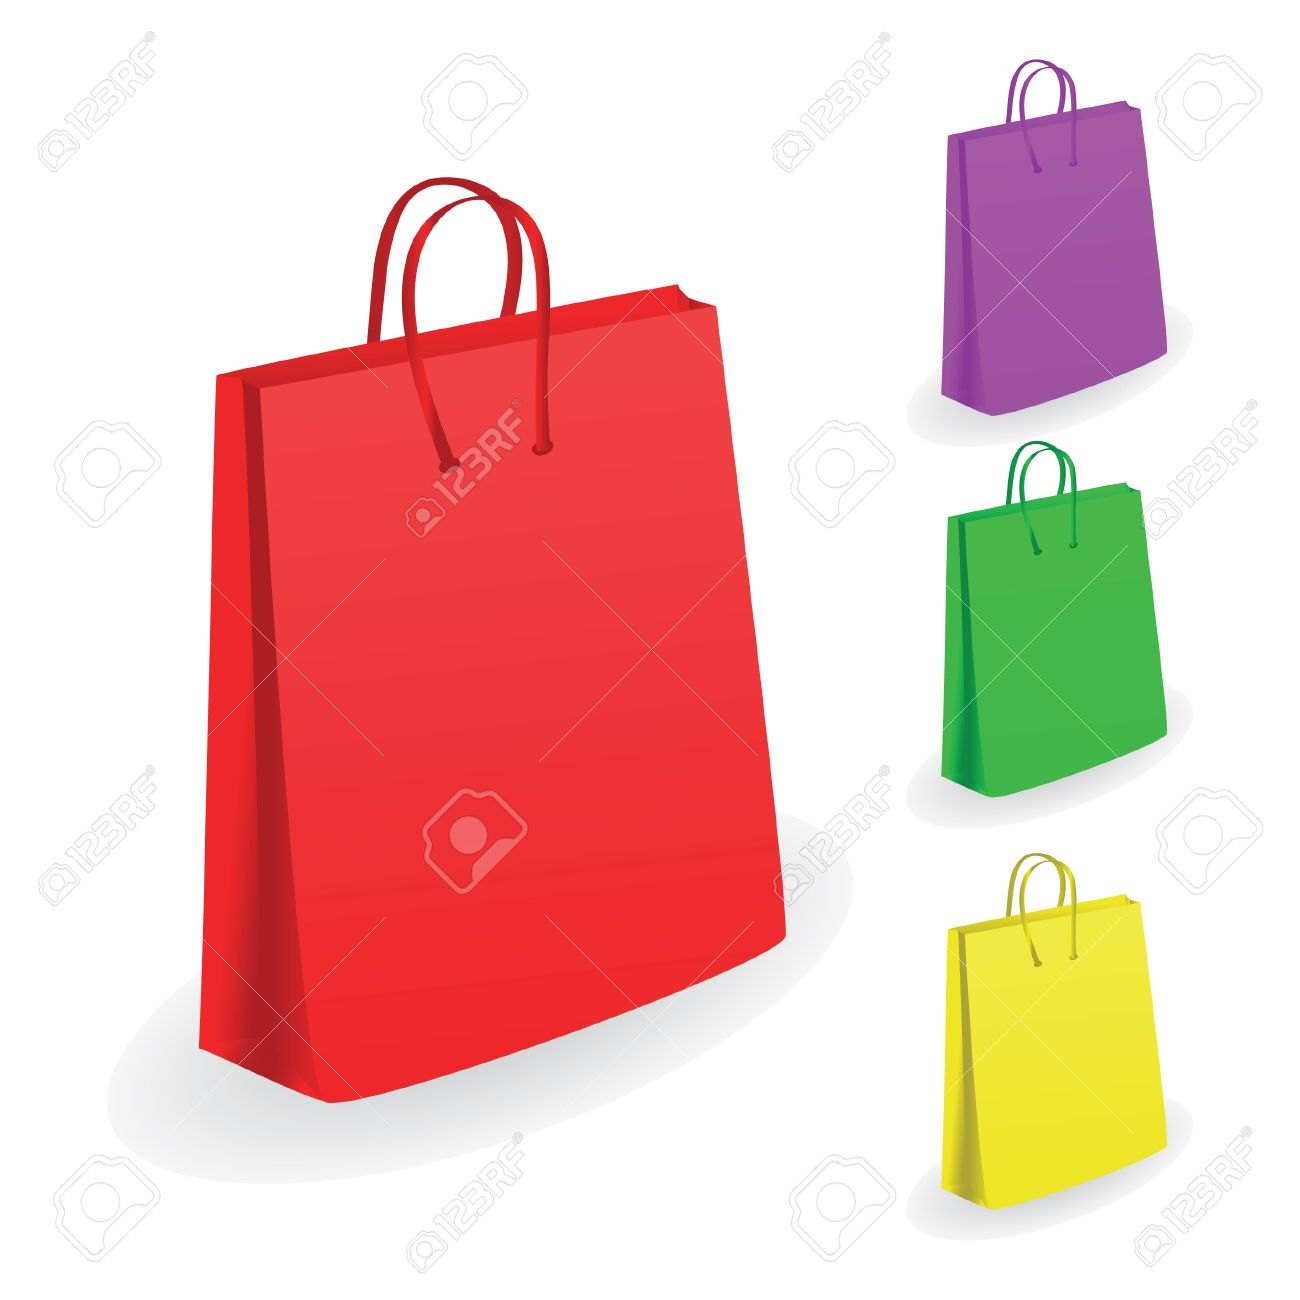 collection of shopping bags vector illustration royalty free